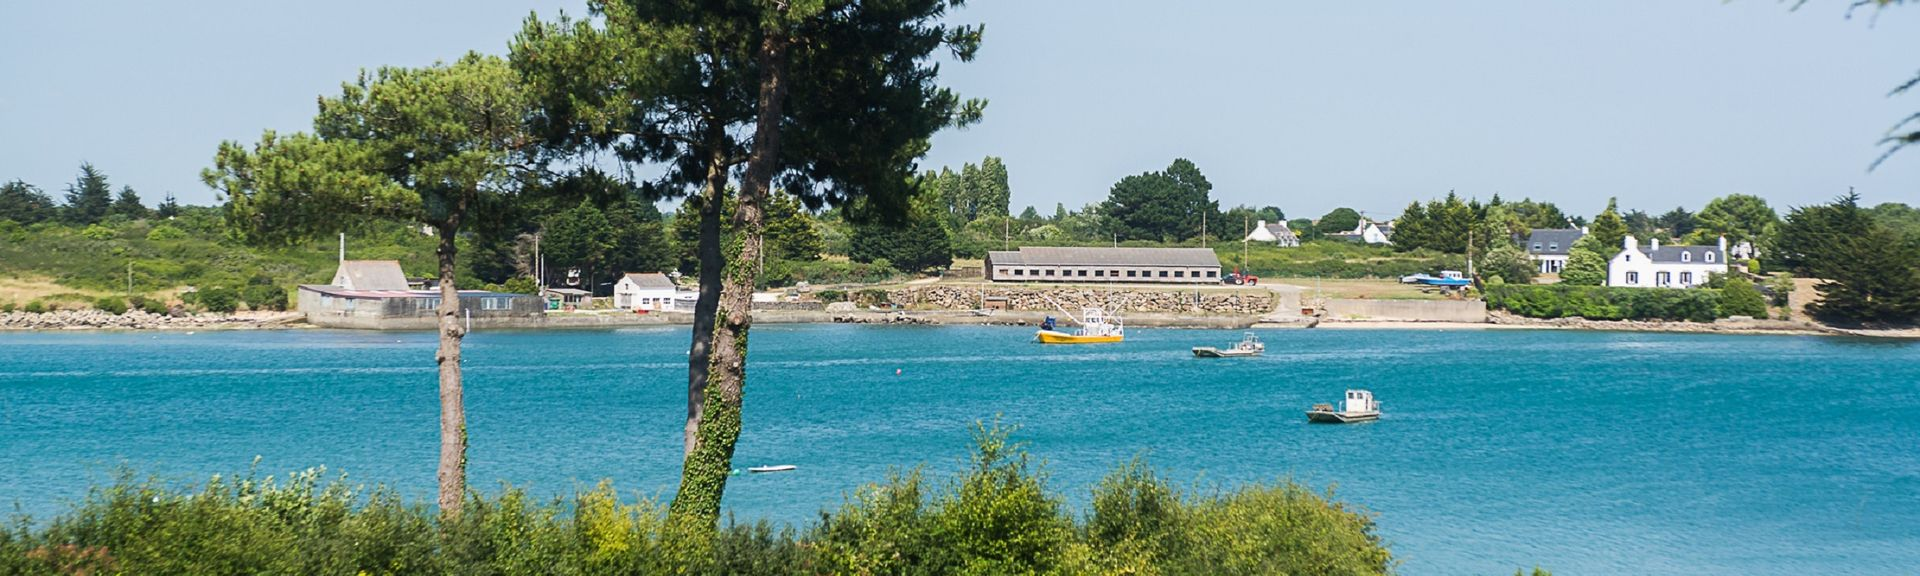 Crach, Morbihan, France